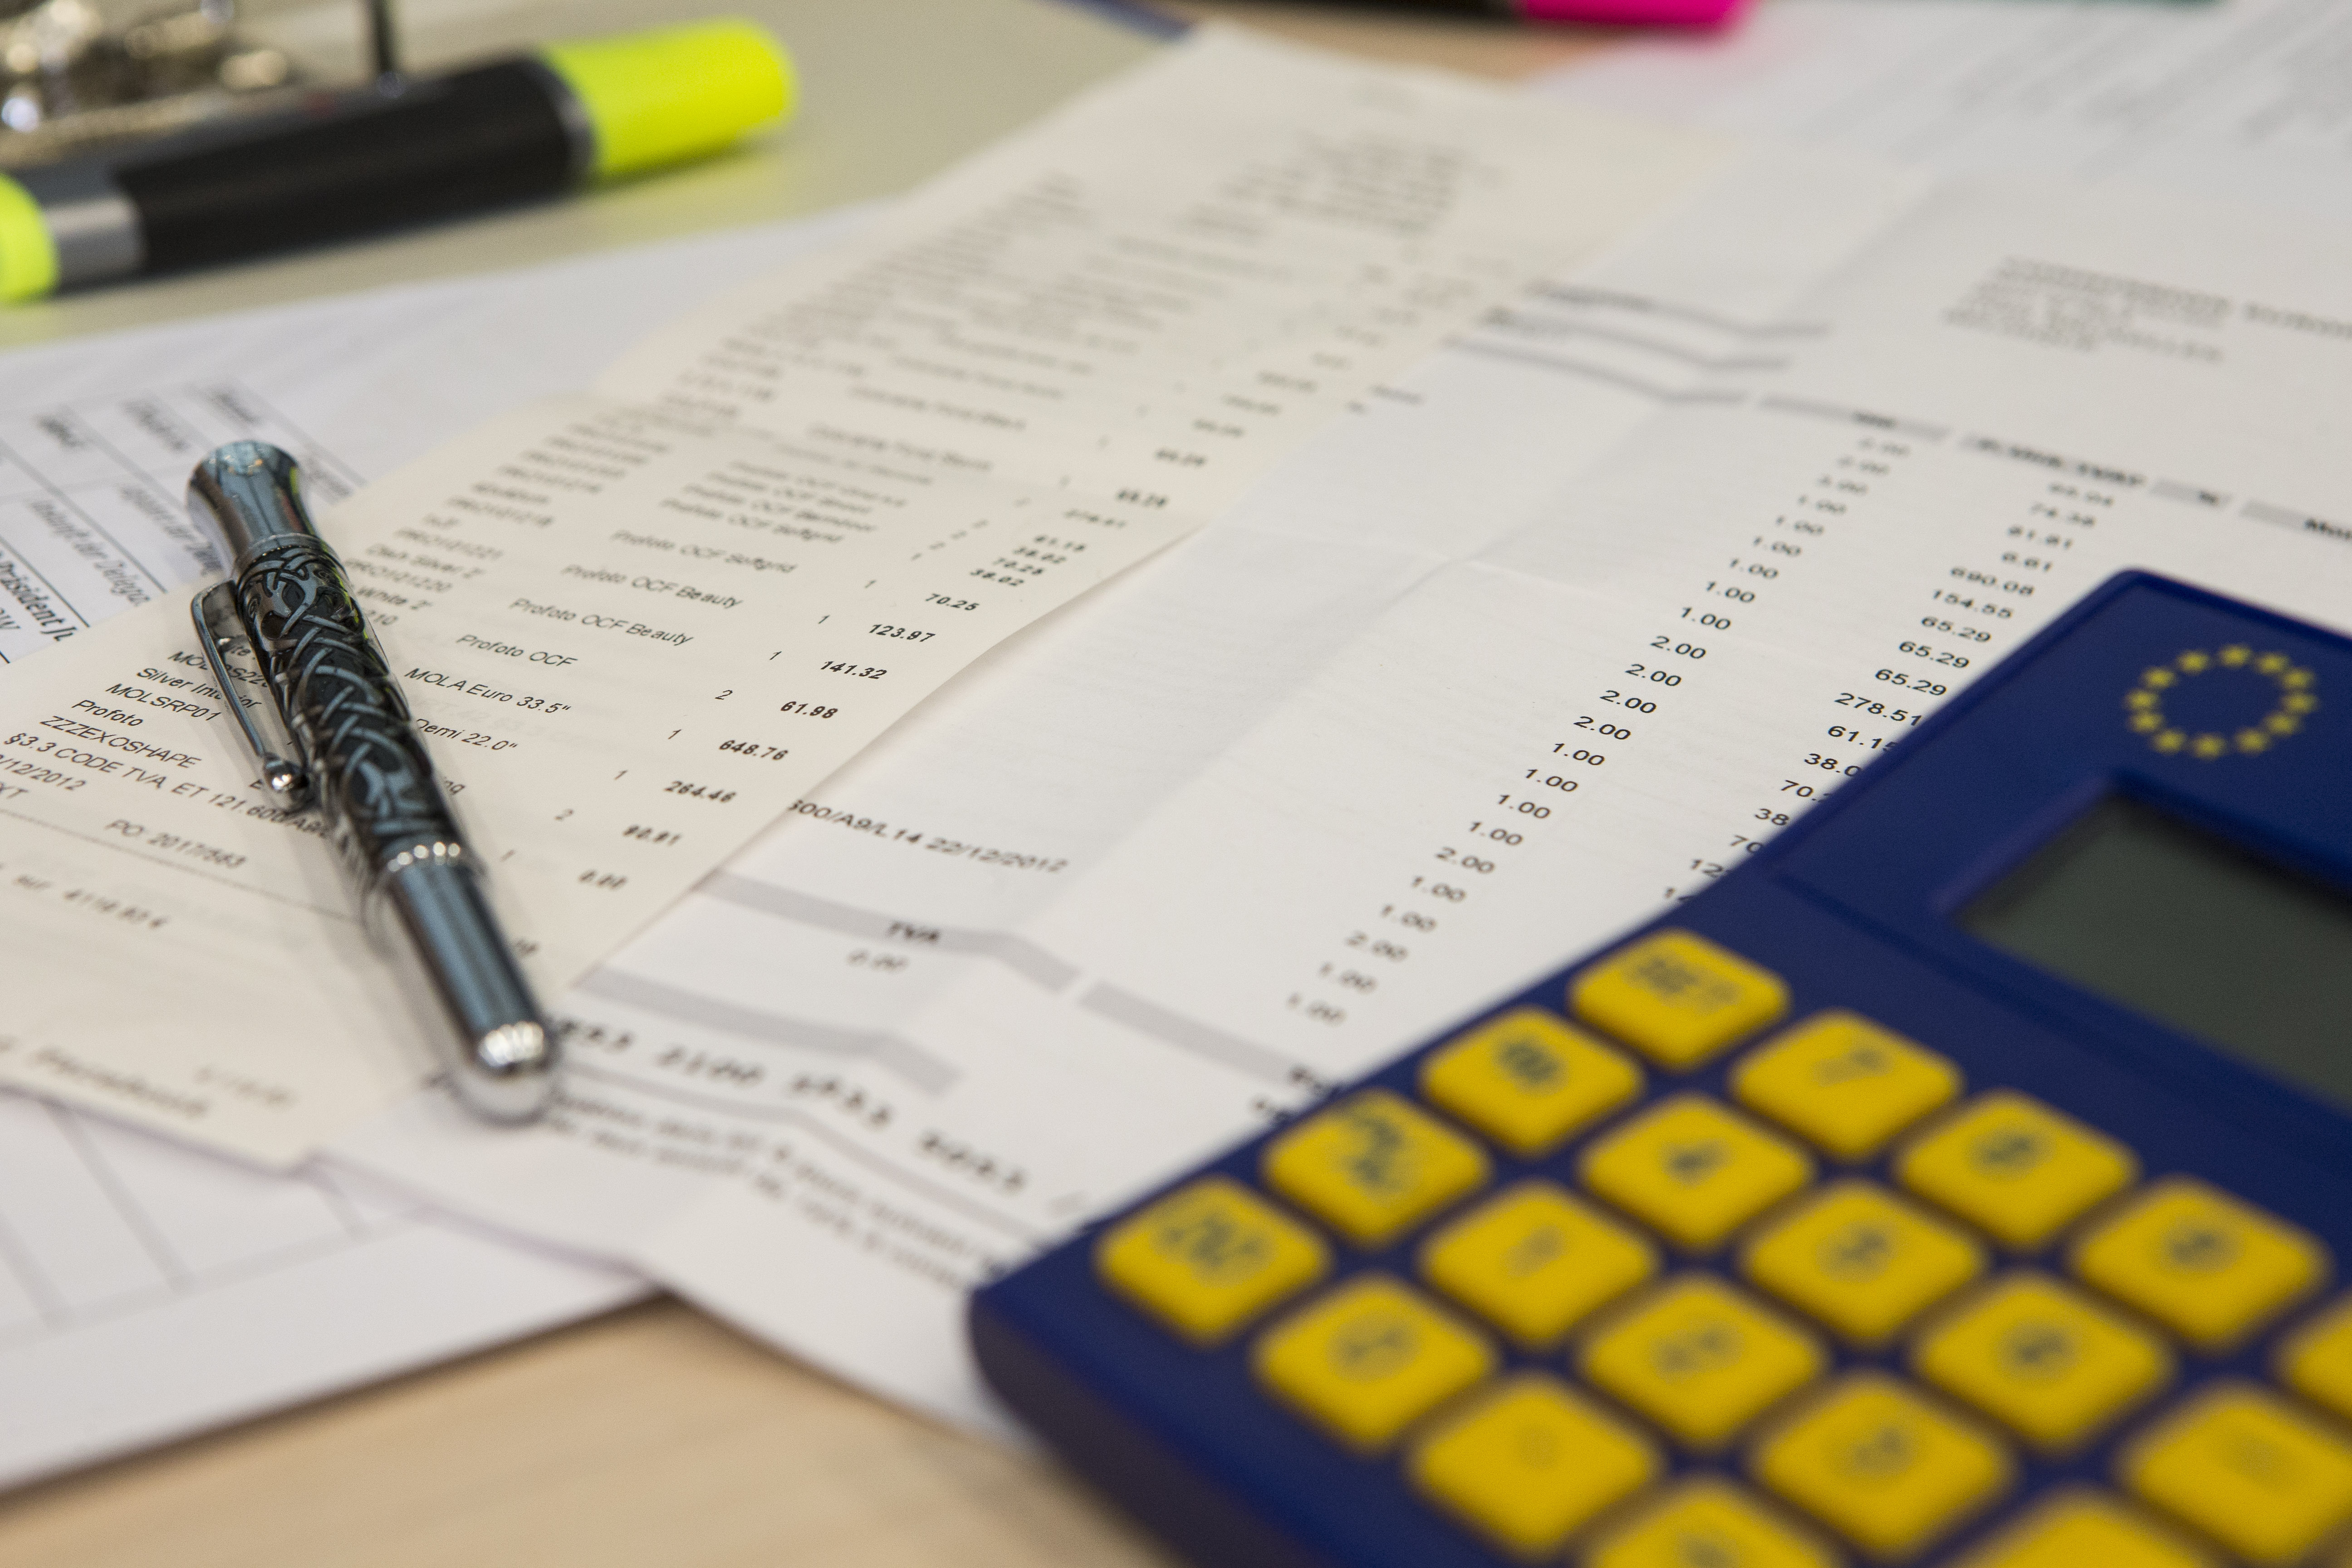 A pen and a calculator lie on top of a financial report